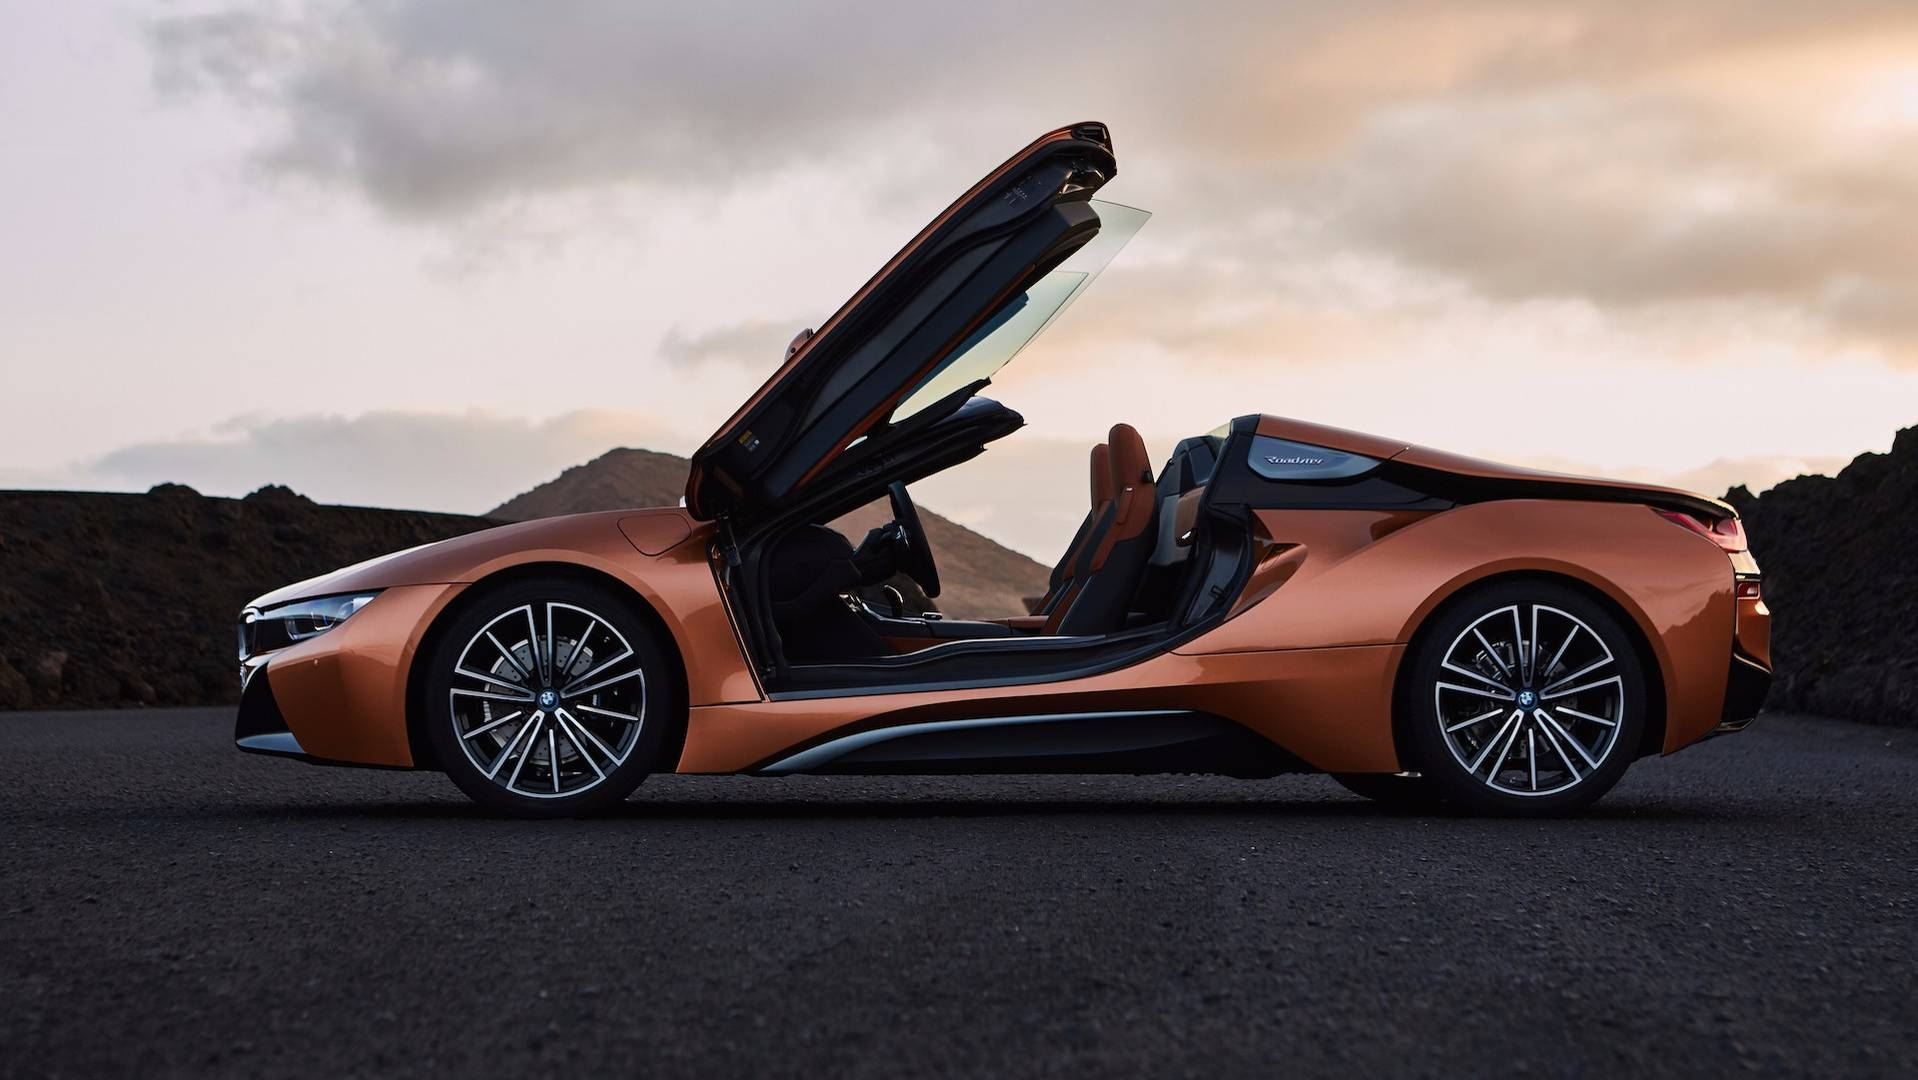 Bmw I8 Interieur Bmw I8 Roadster 2018 Hybrid Sports Car Gets Even More Appeal